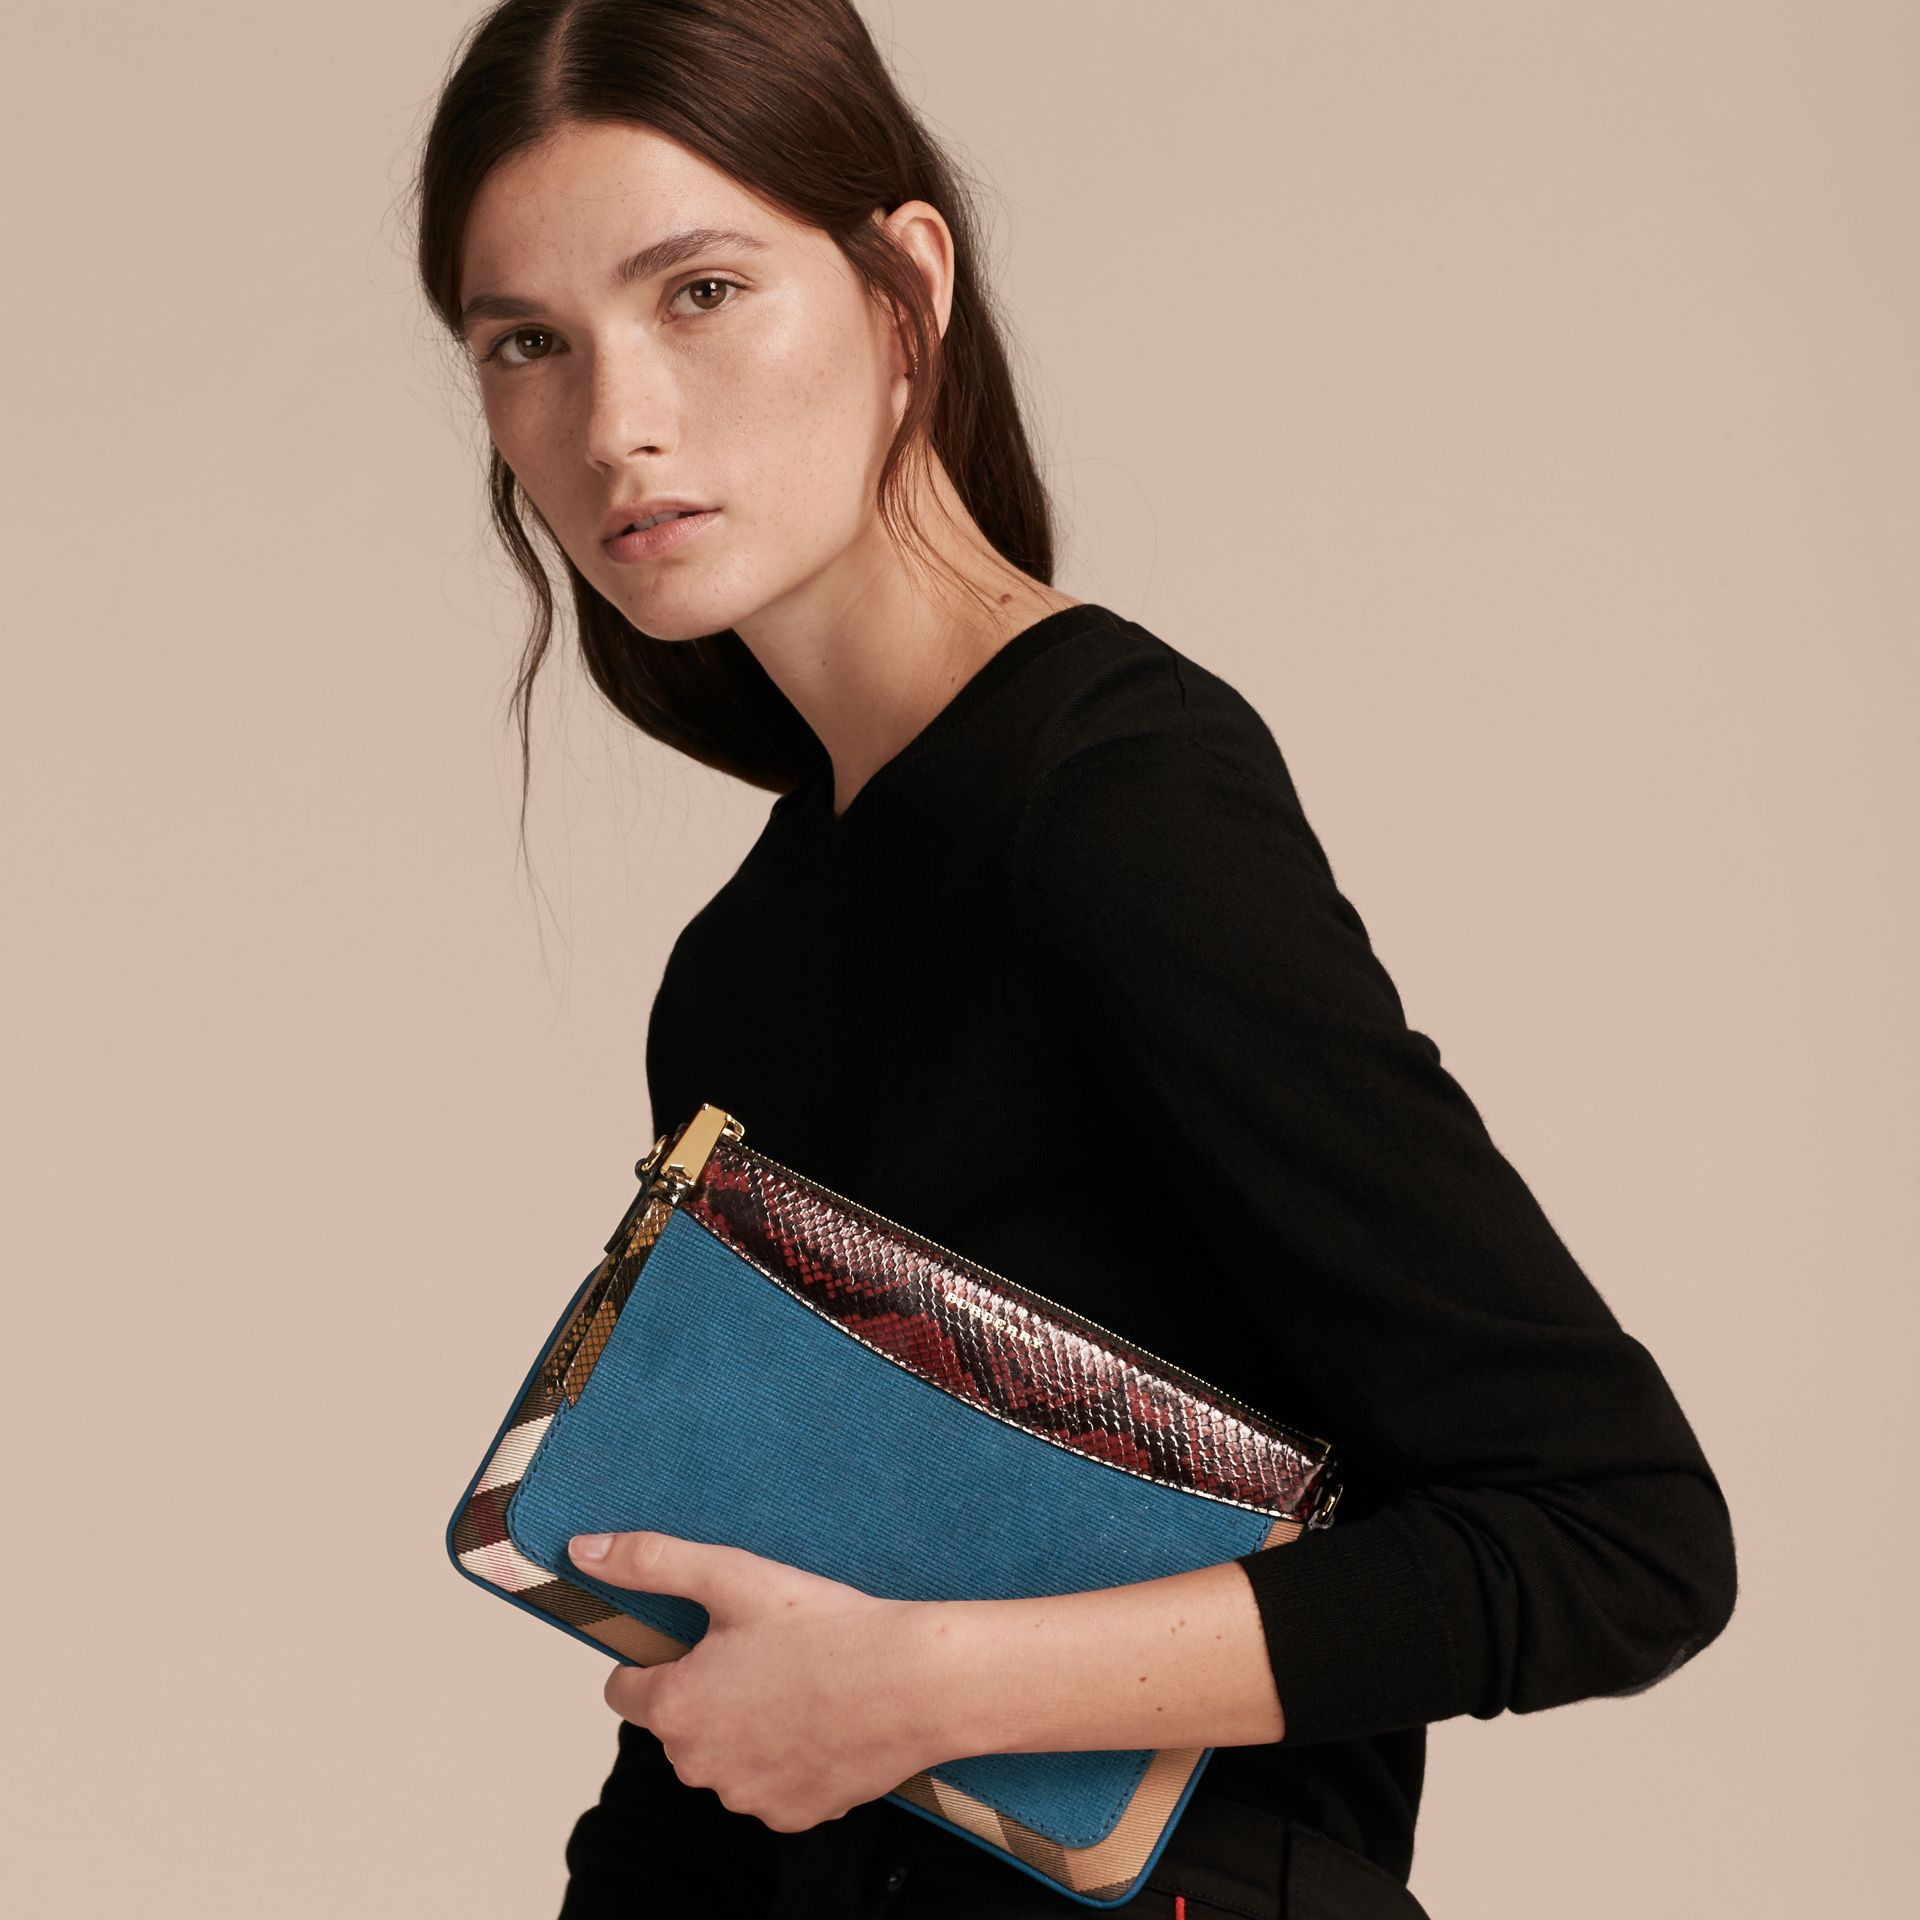 Leather, House Check and Snakeskin Clutch Bag in Peacock Blue - Women | Burberry - gallery image 3